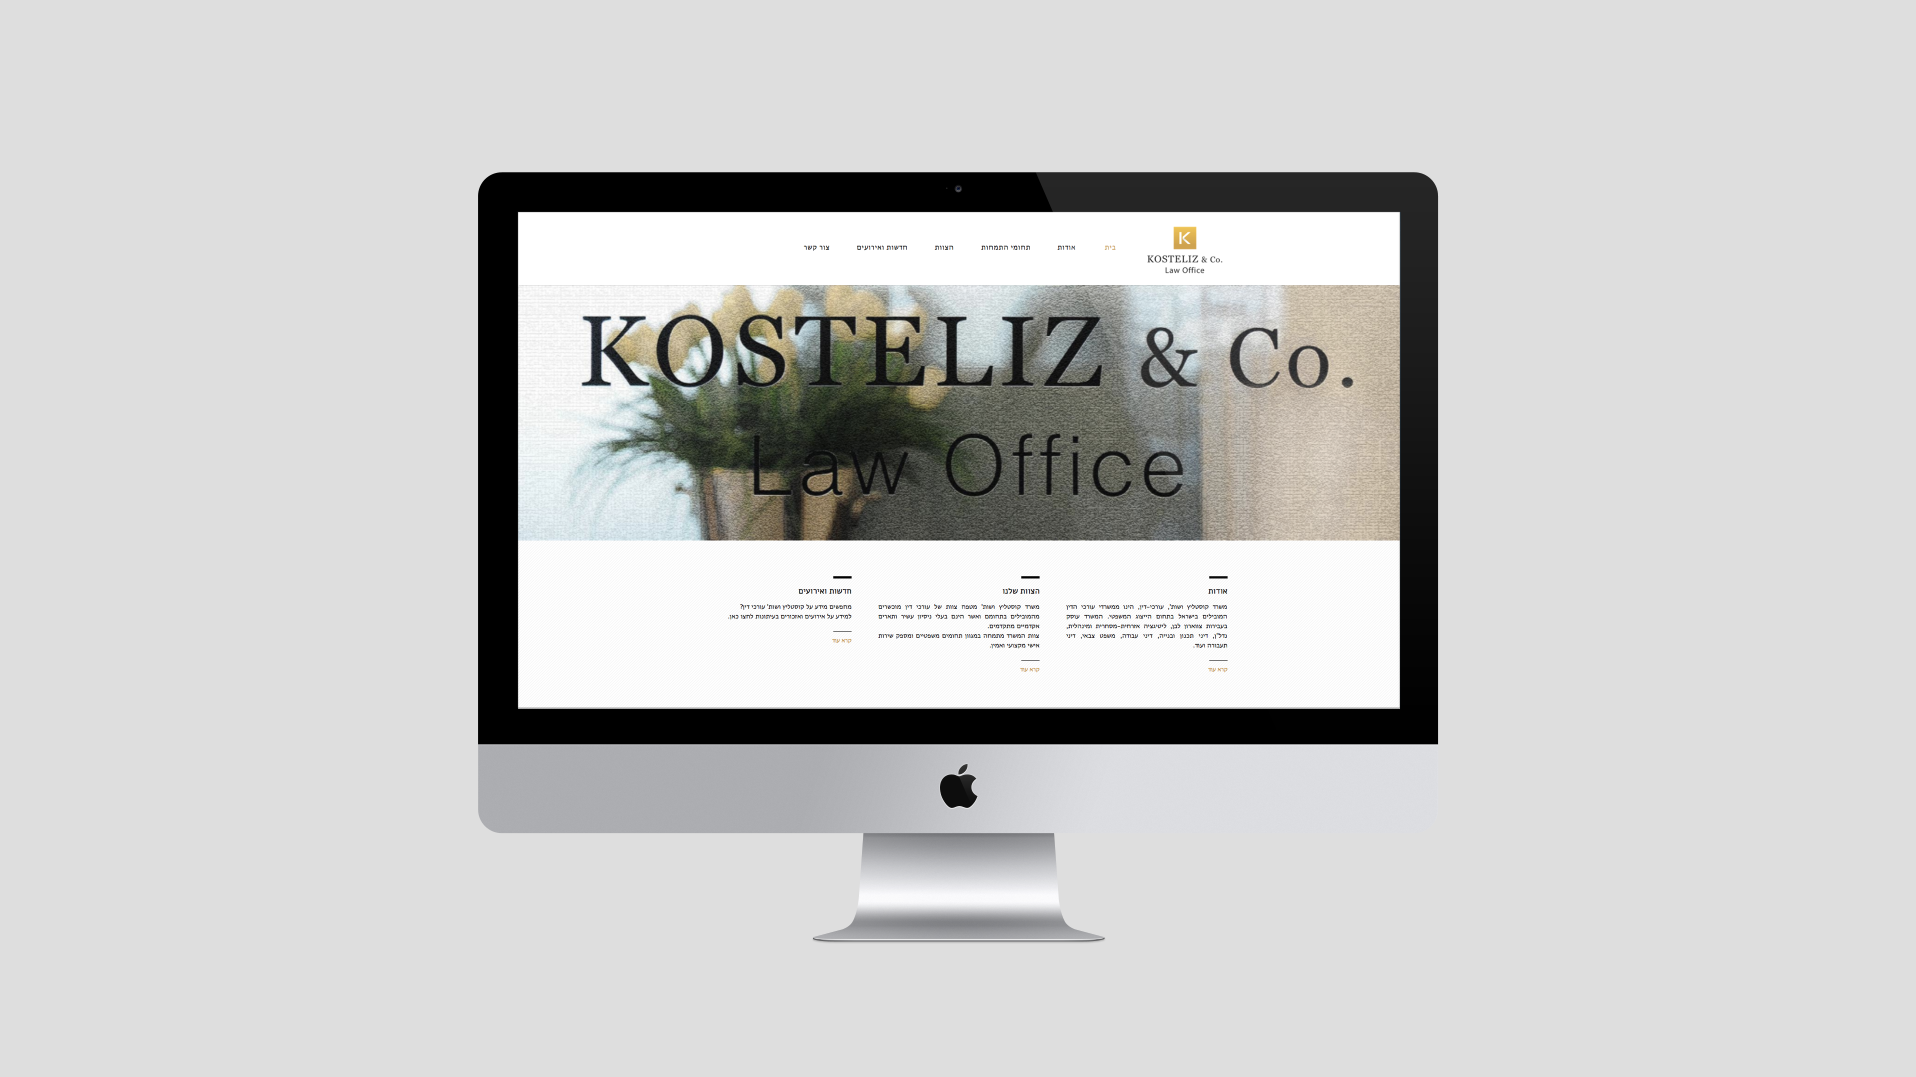 Mac 3 - Kostelitz & Co